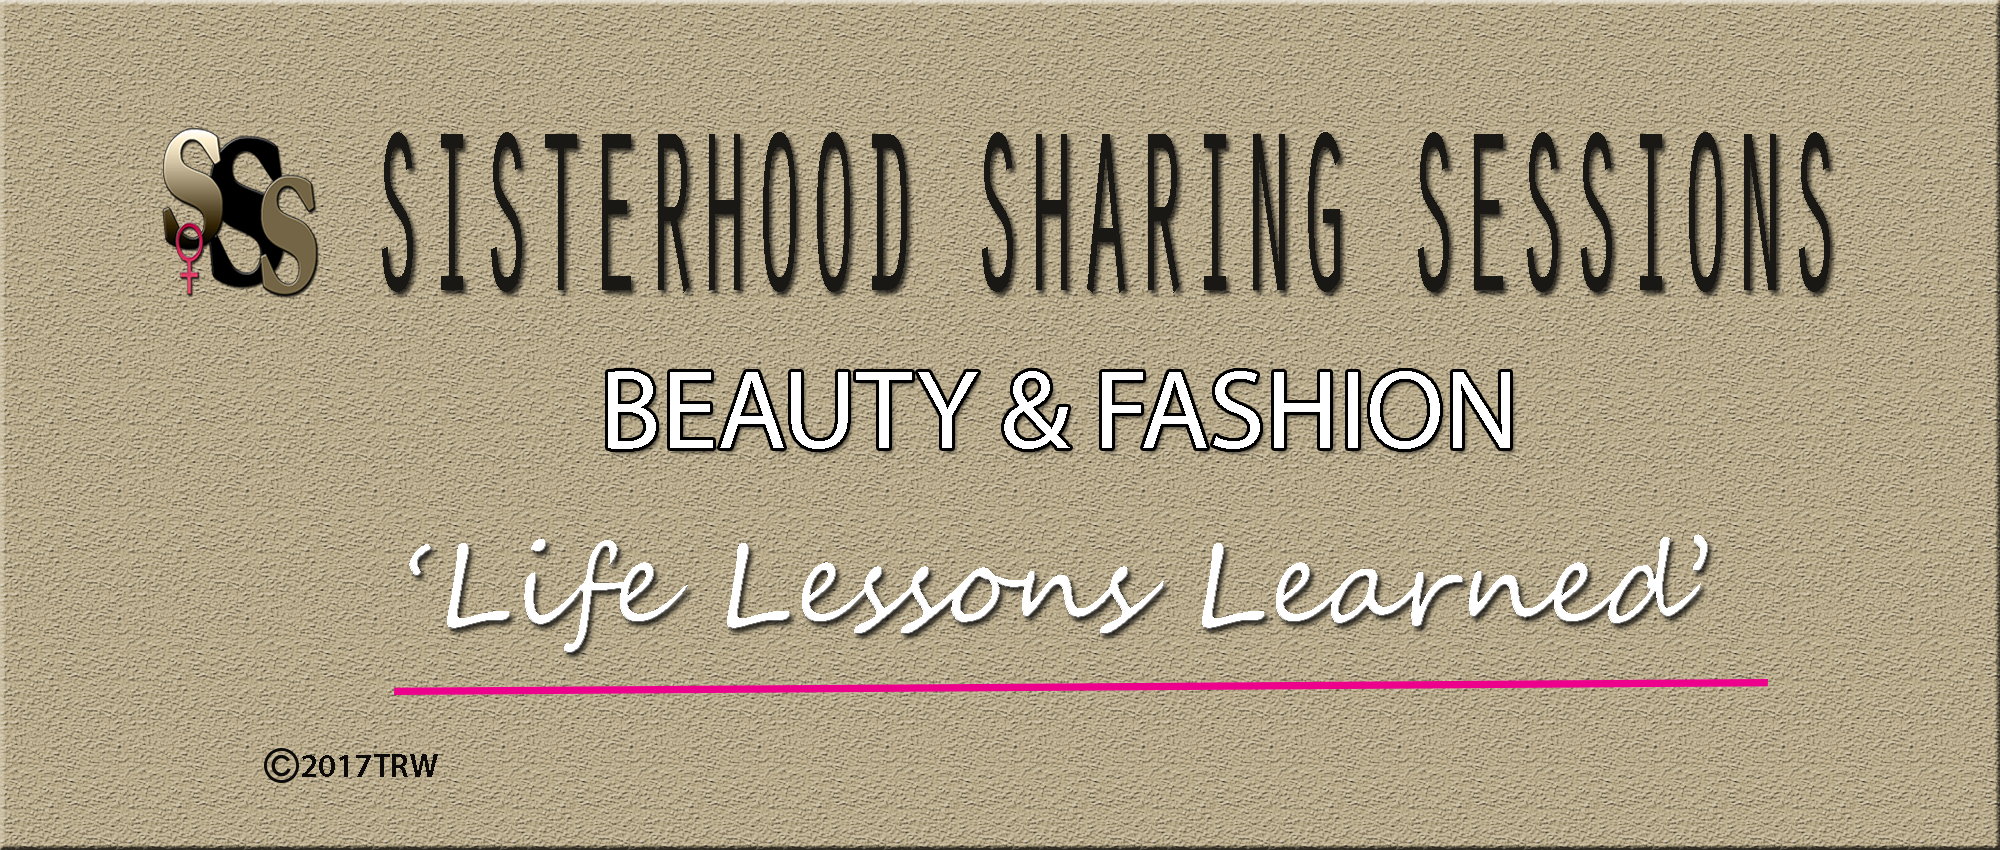 Power Of Women | Sisterhood Sessions | Beauty & Fashion